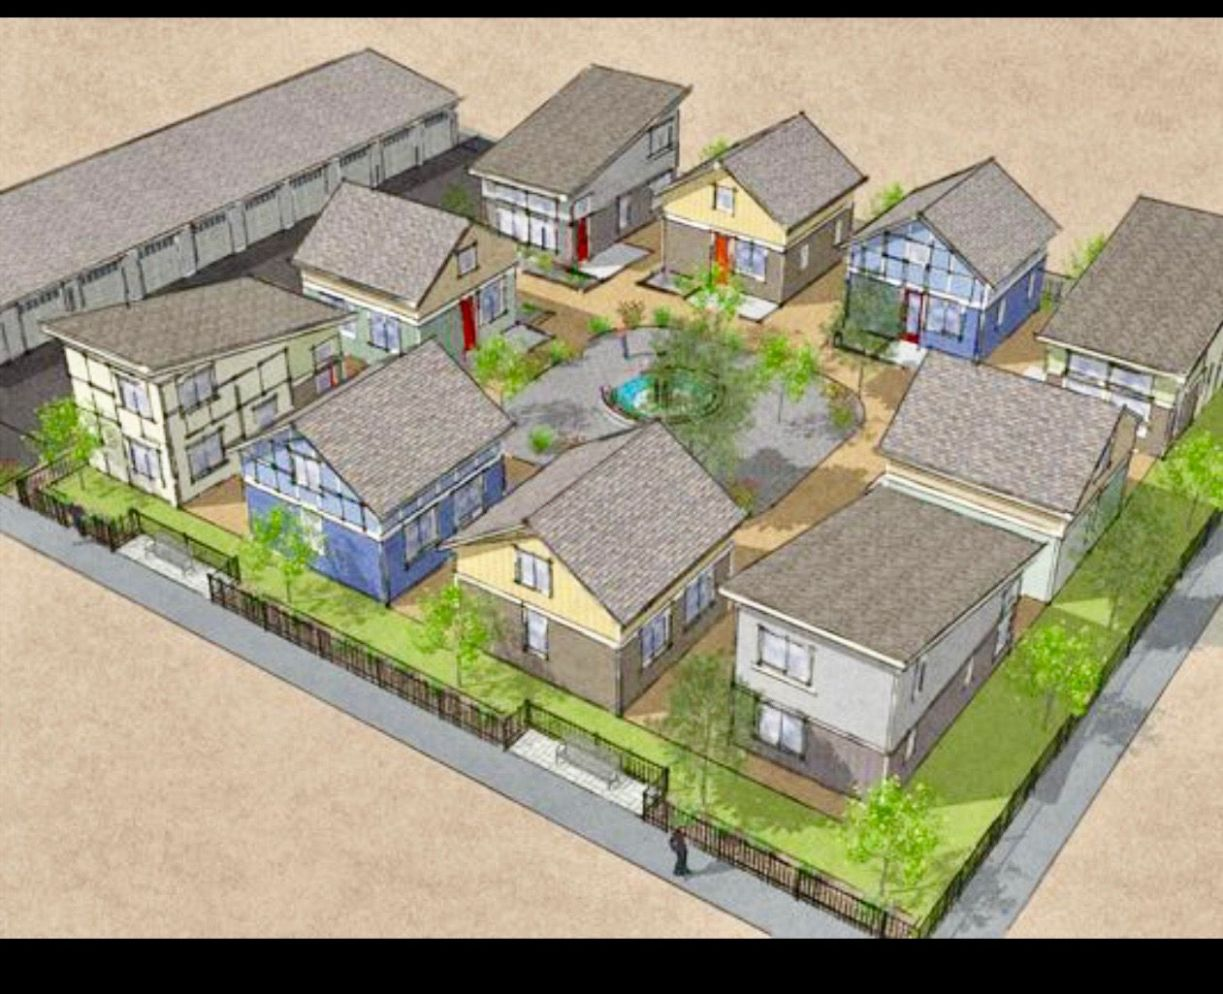 PARKING / Tiny community layout idea | Tiny house community, Tiny ..